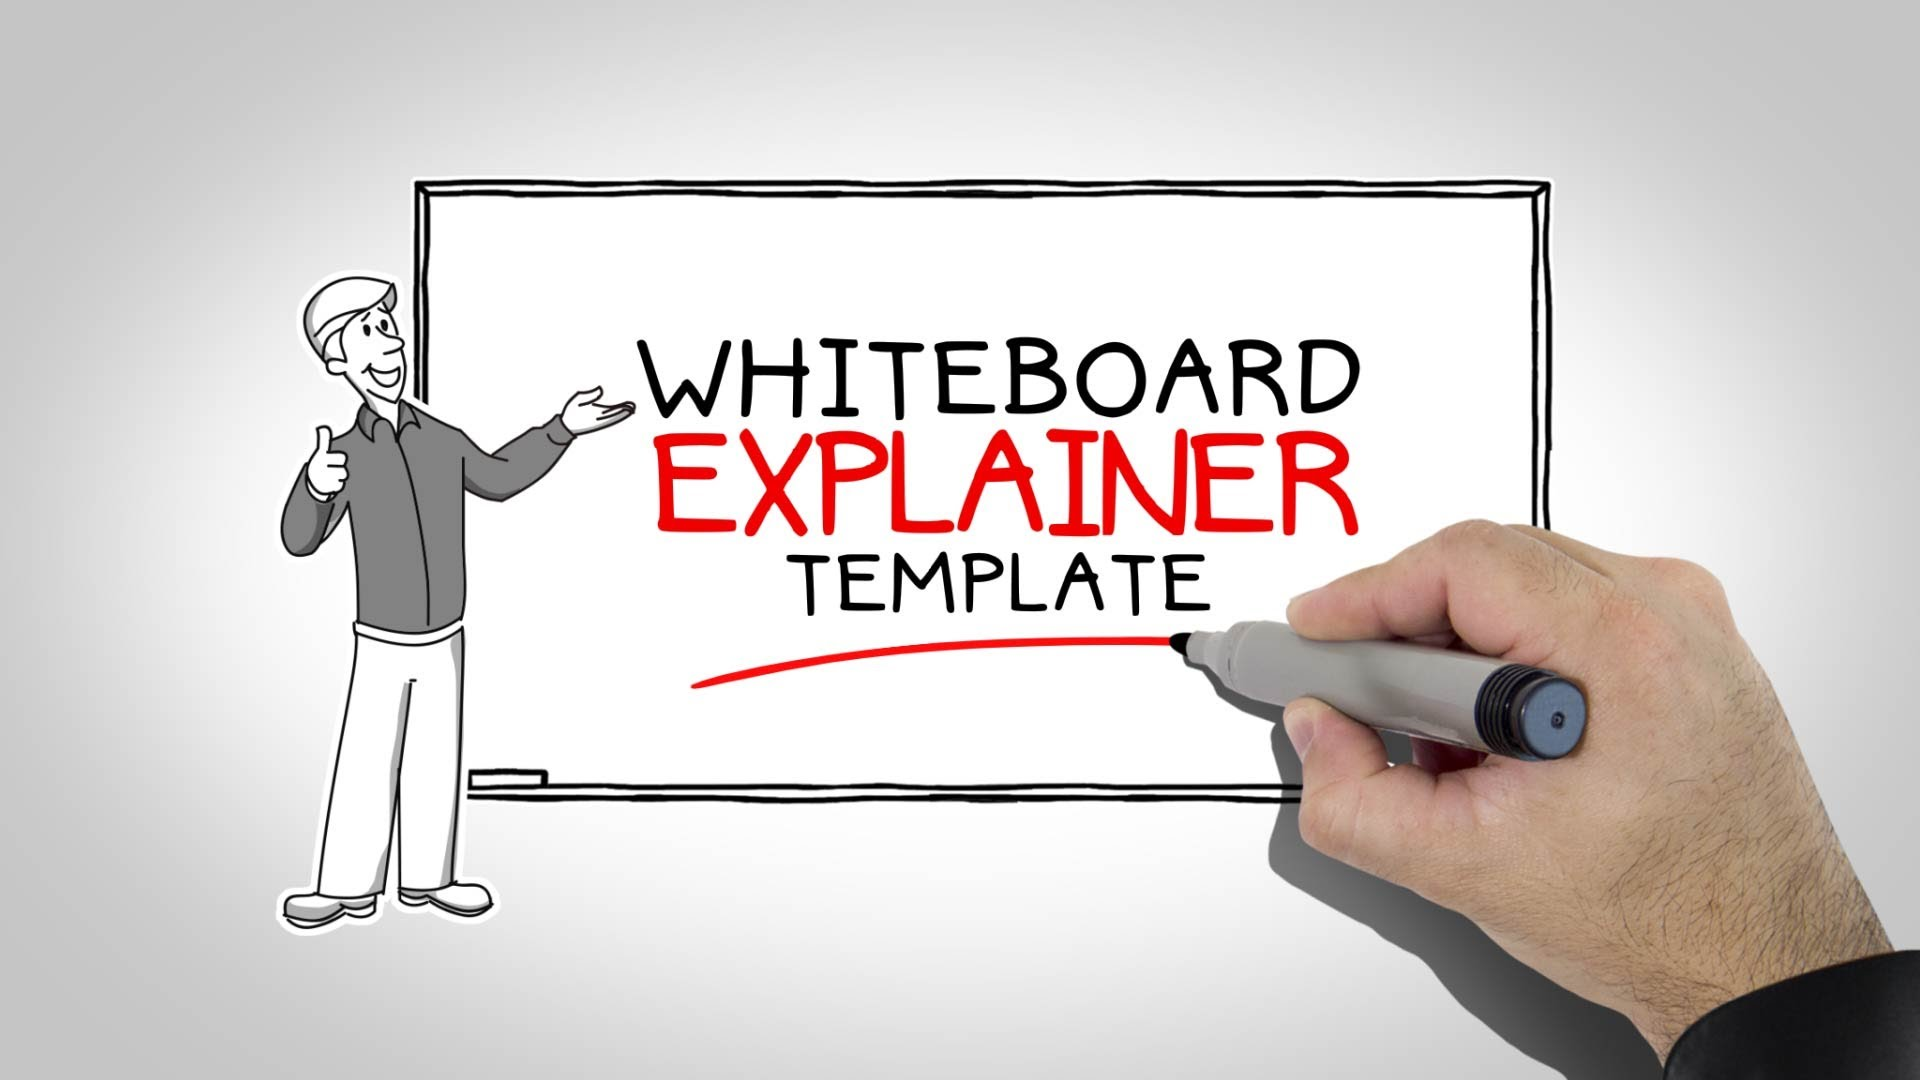 Get a Professional Animated Explainer Video with Voice-Over for your website, product or service